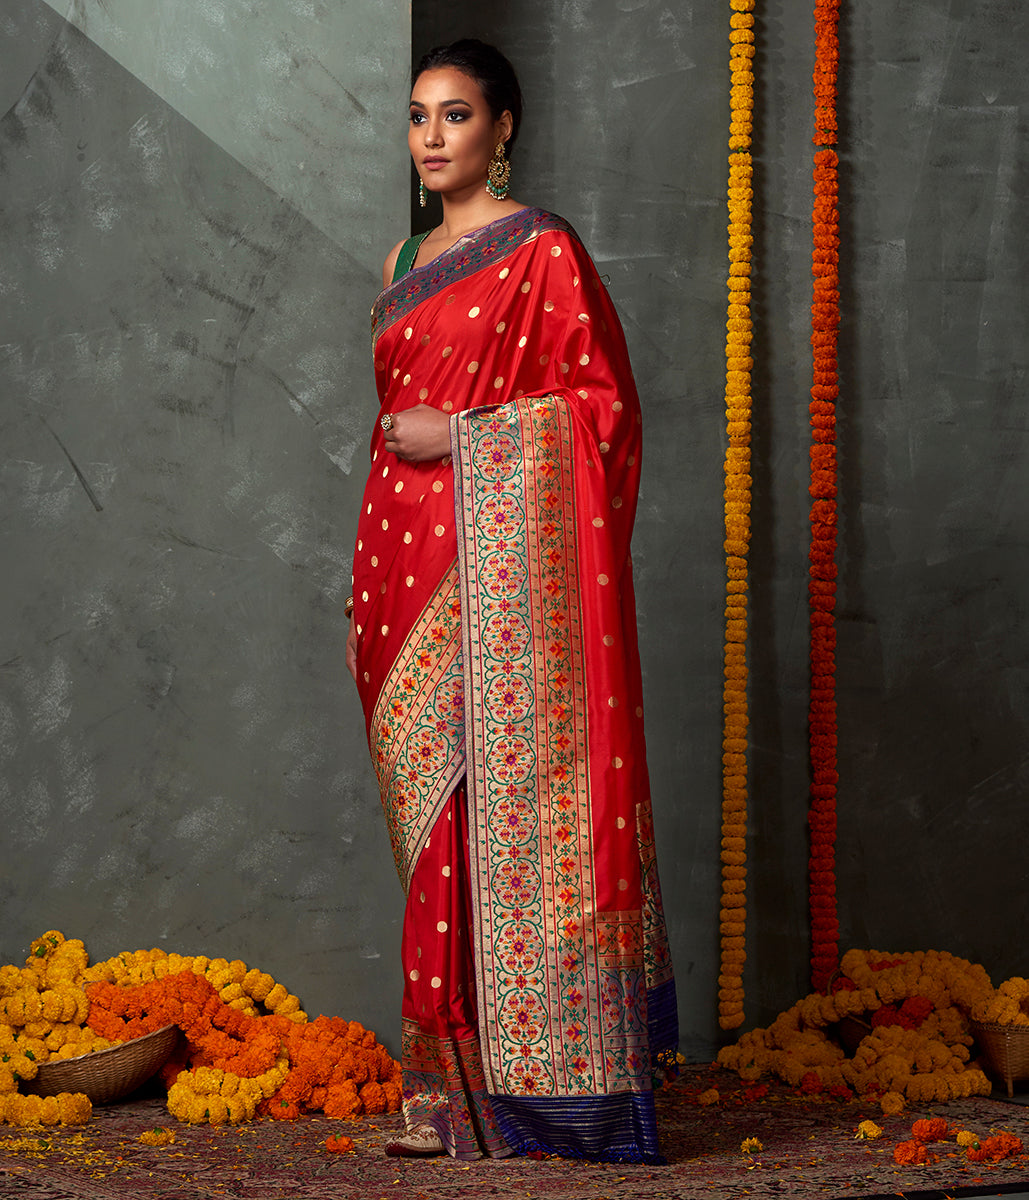 Handwoven Red Ginni Booti Saree with Paithani Border